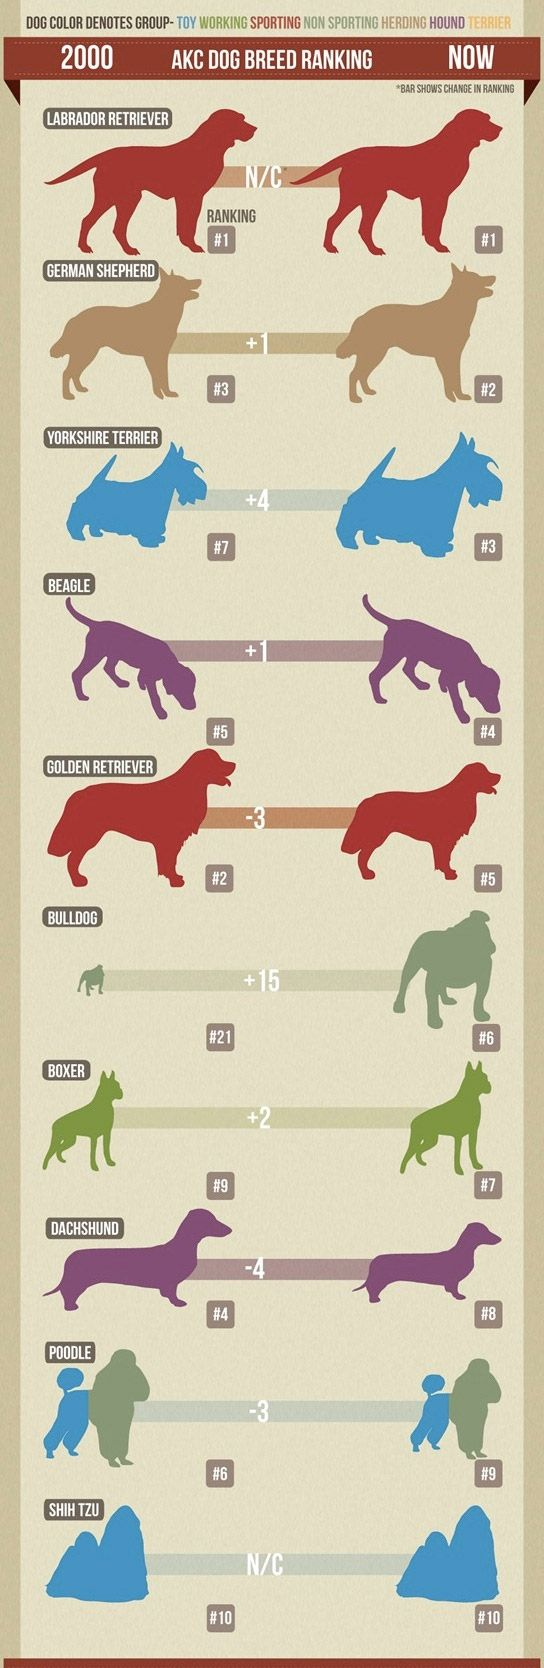 Dog Breed Aggression Ranking